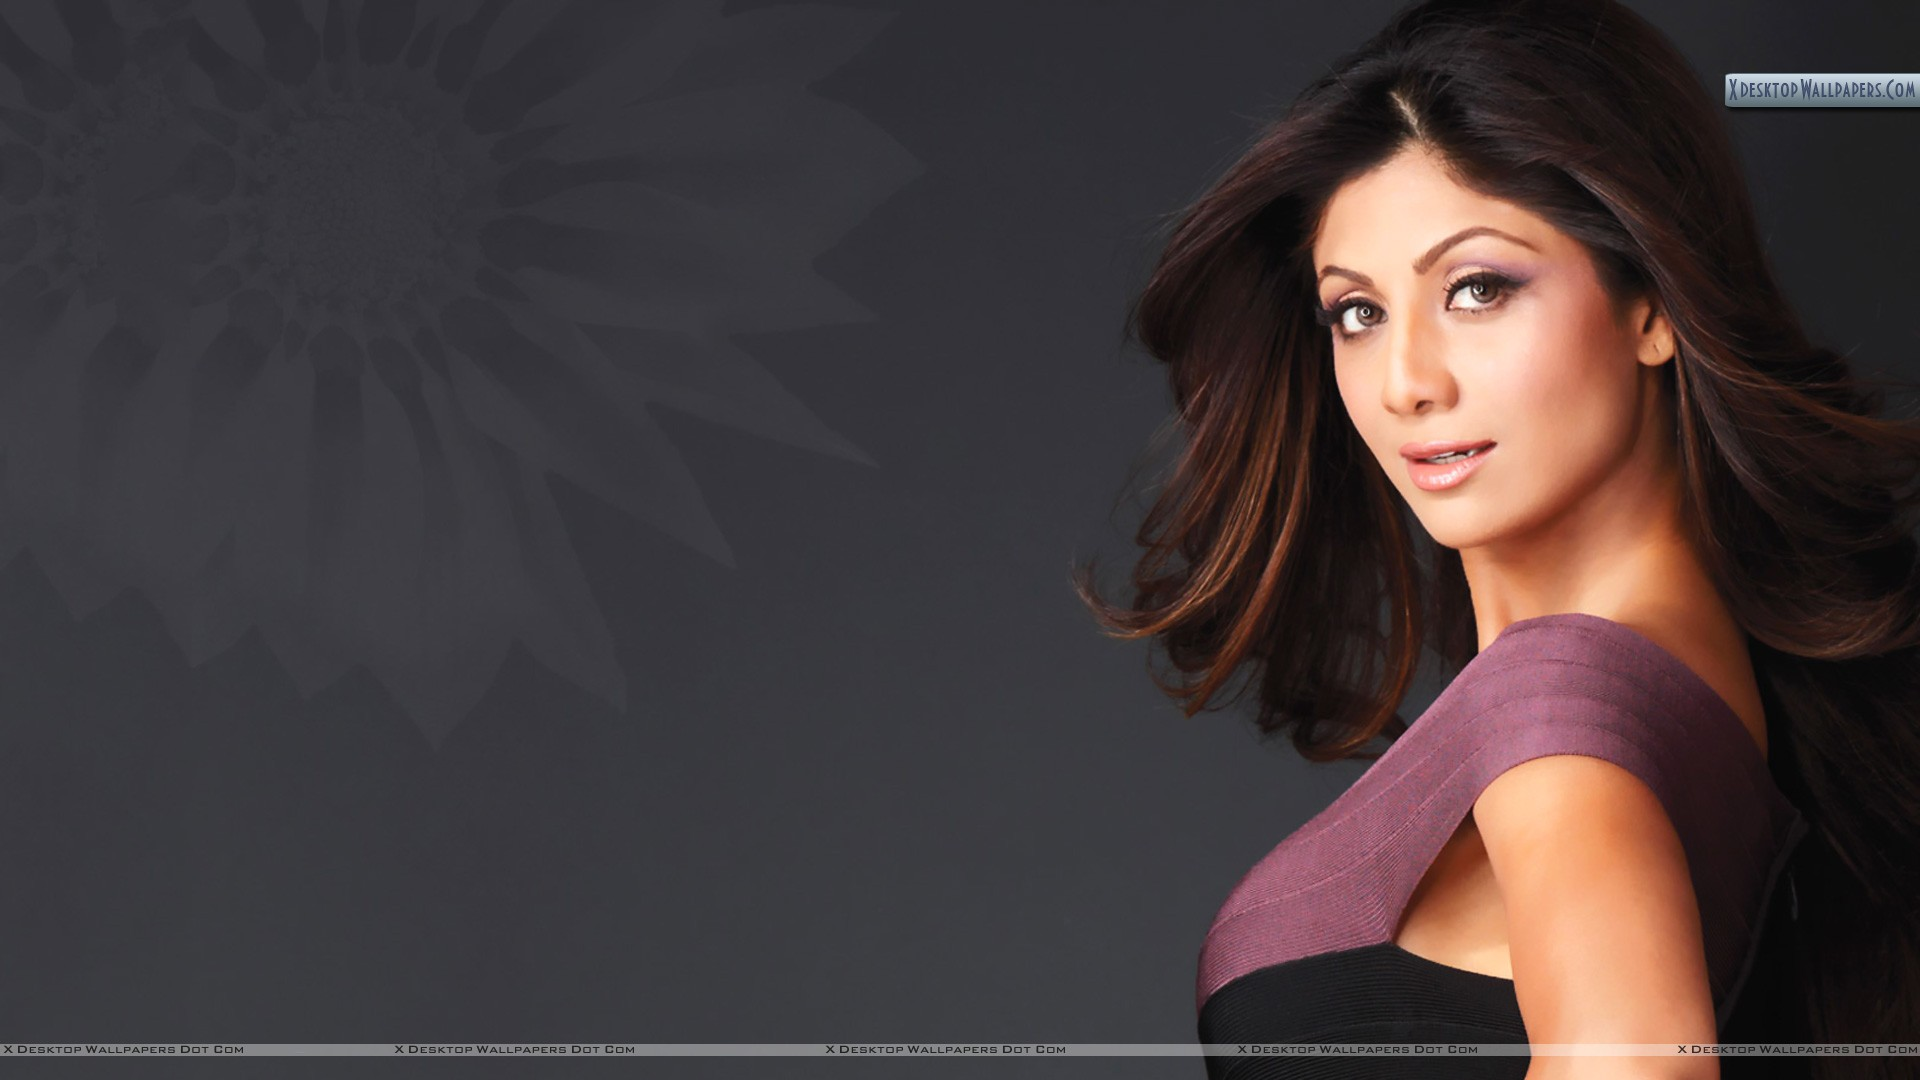 8k Wallpapers Of Shilpa Shetty